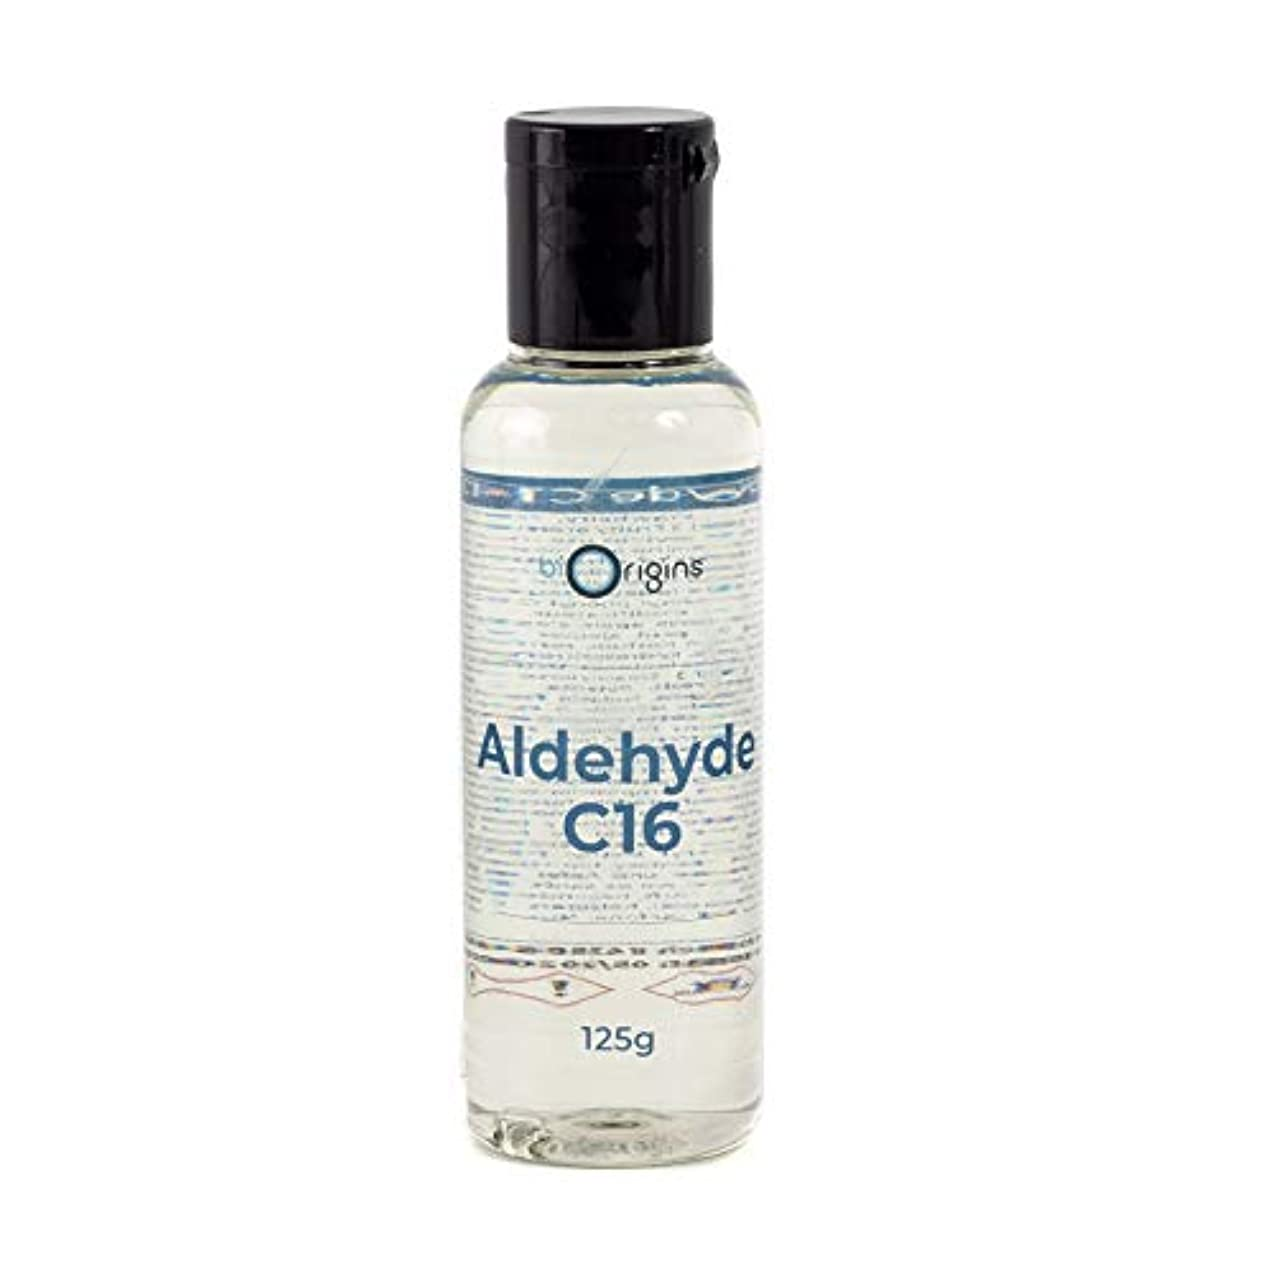 留め金過度にチャンバーMystic Moments | Aldehyde C16 (Ethyl Methyl Phenyl Glycidate) - 250g